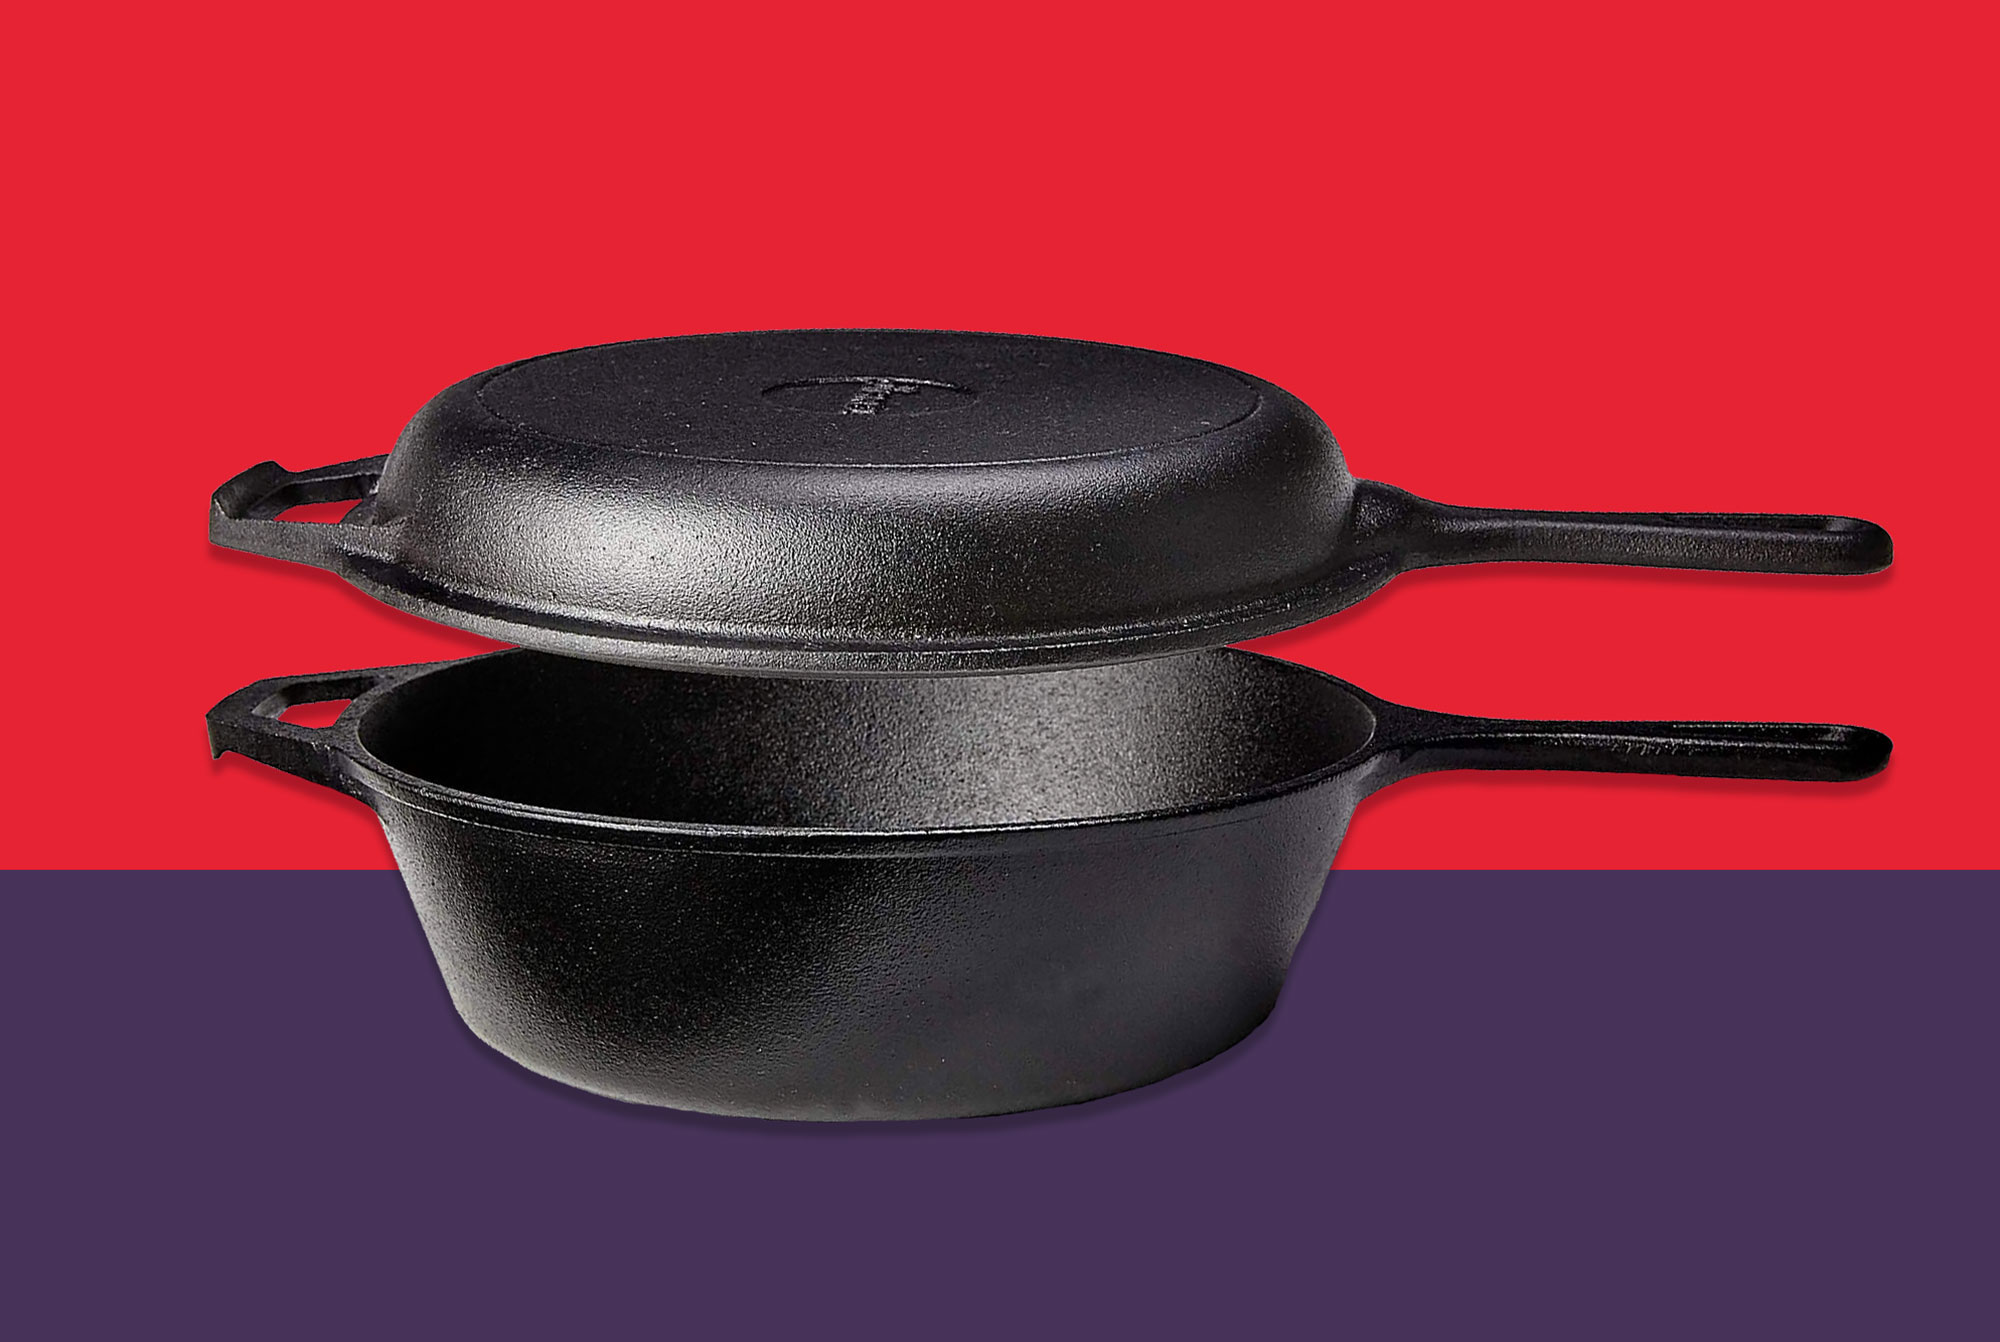 Cuisinel Cast Iron Skillet and Lid